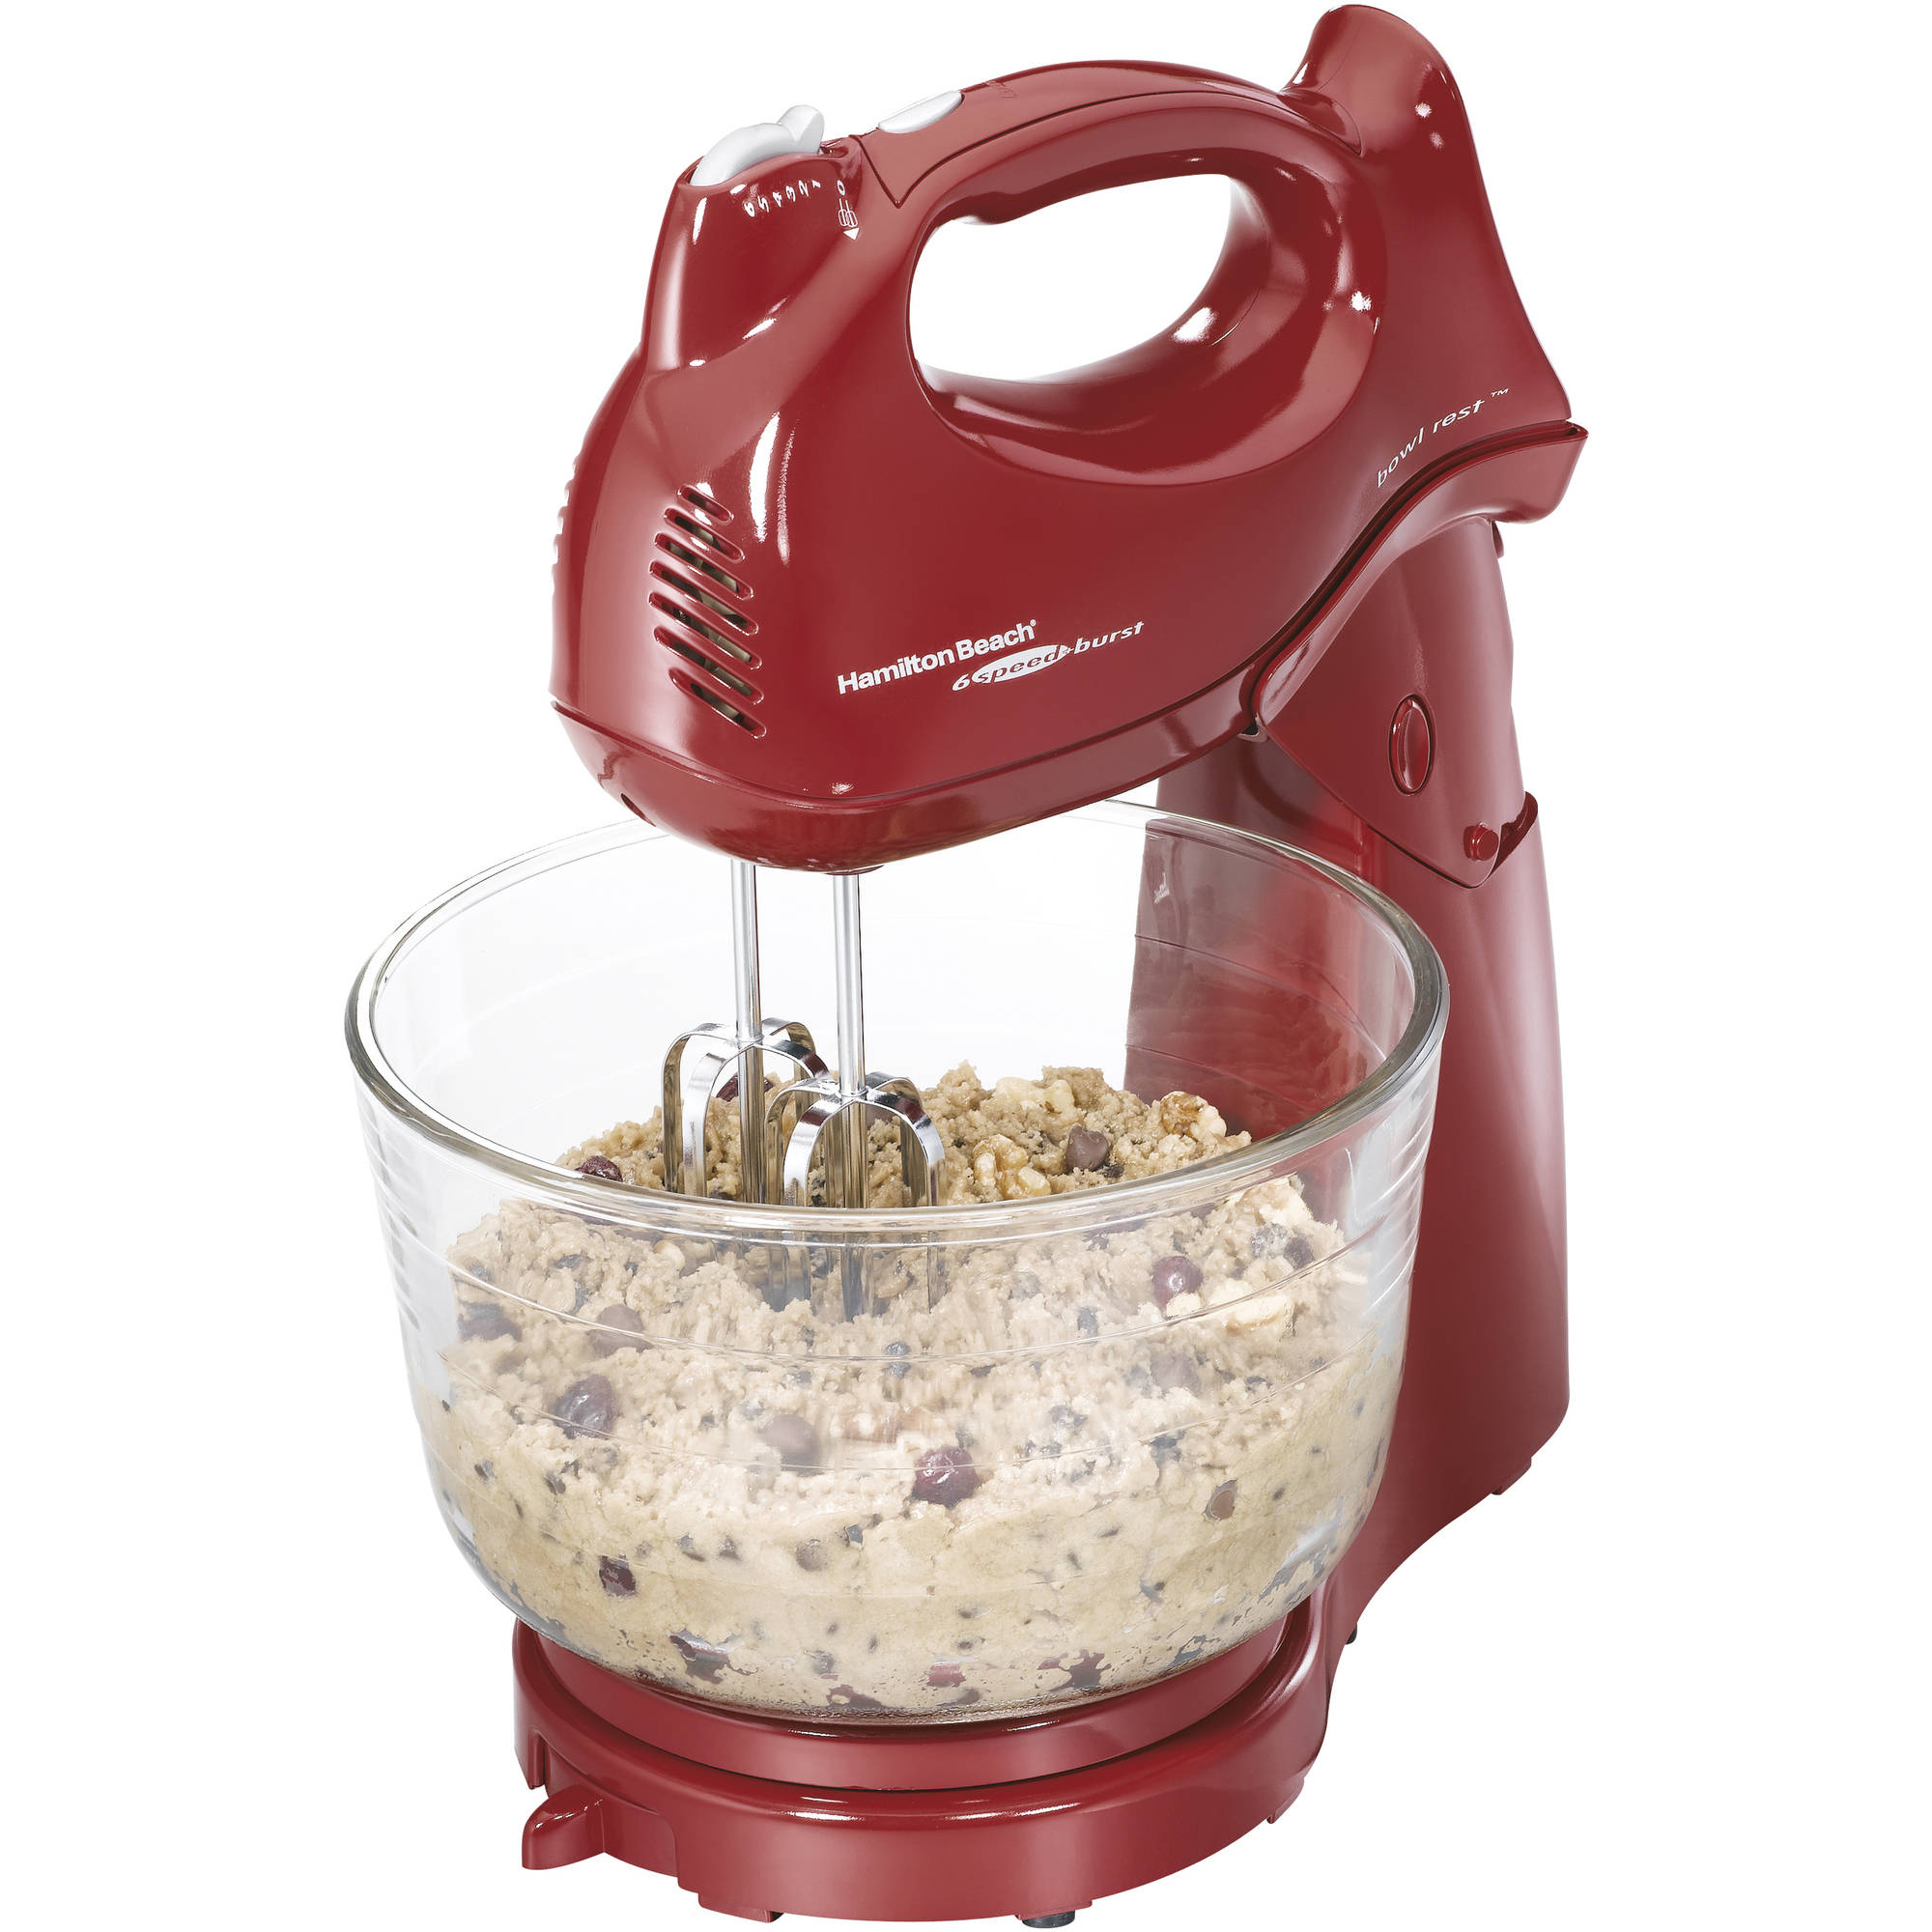 stand mixers - Kitchenaid Mixer Best Price